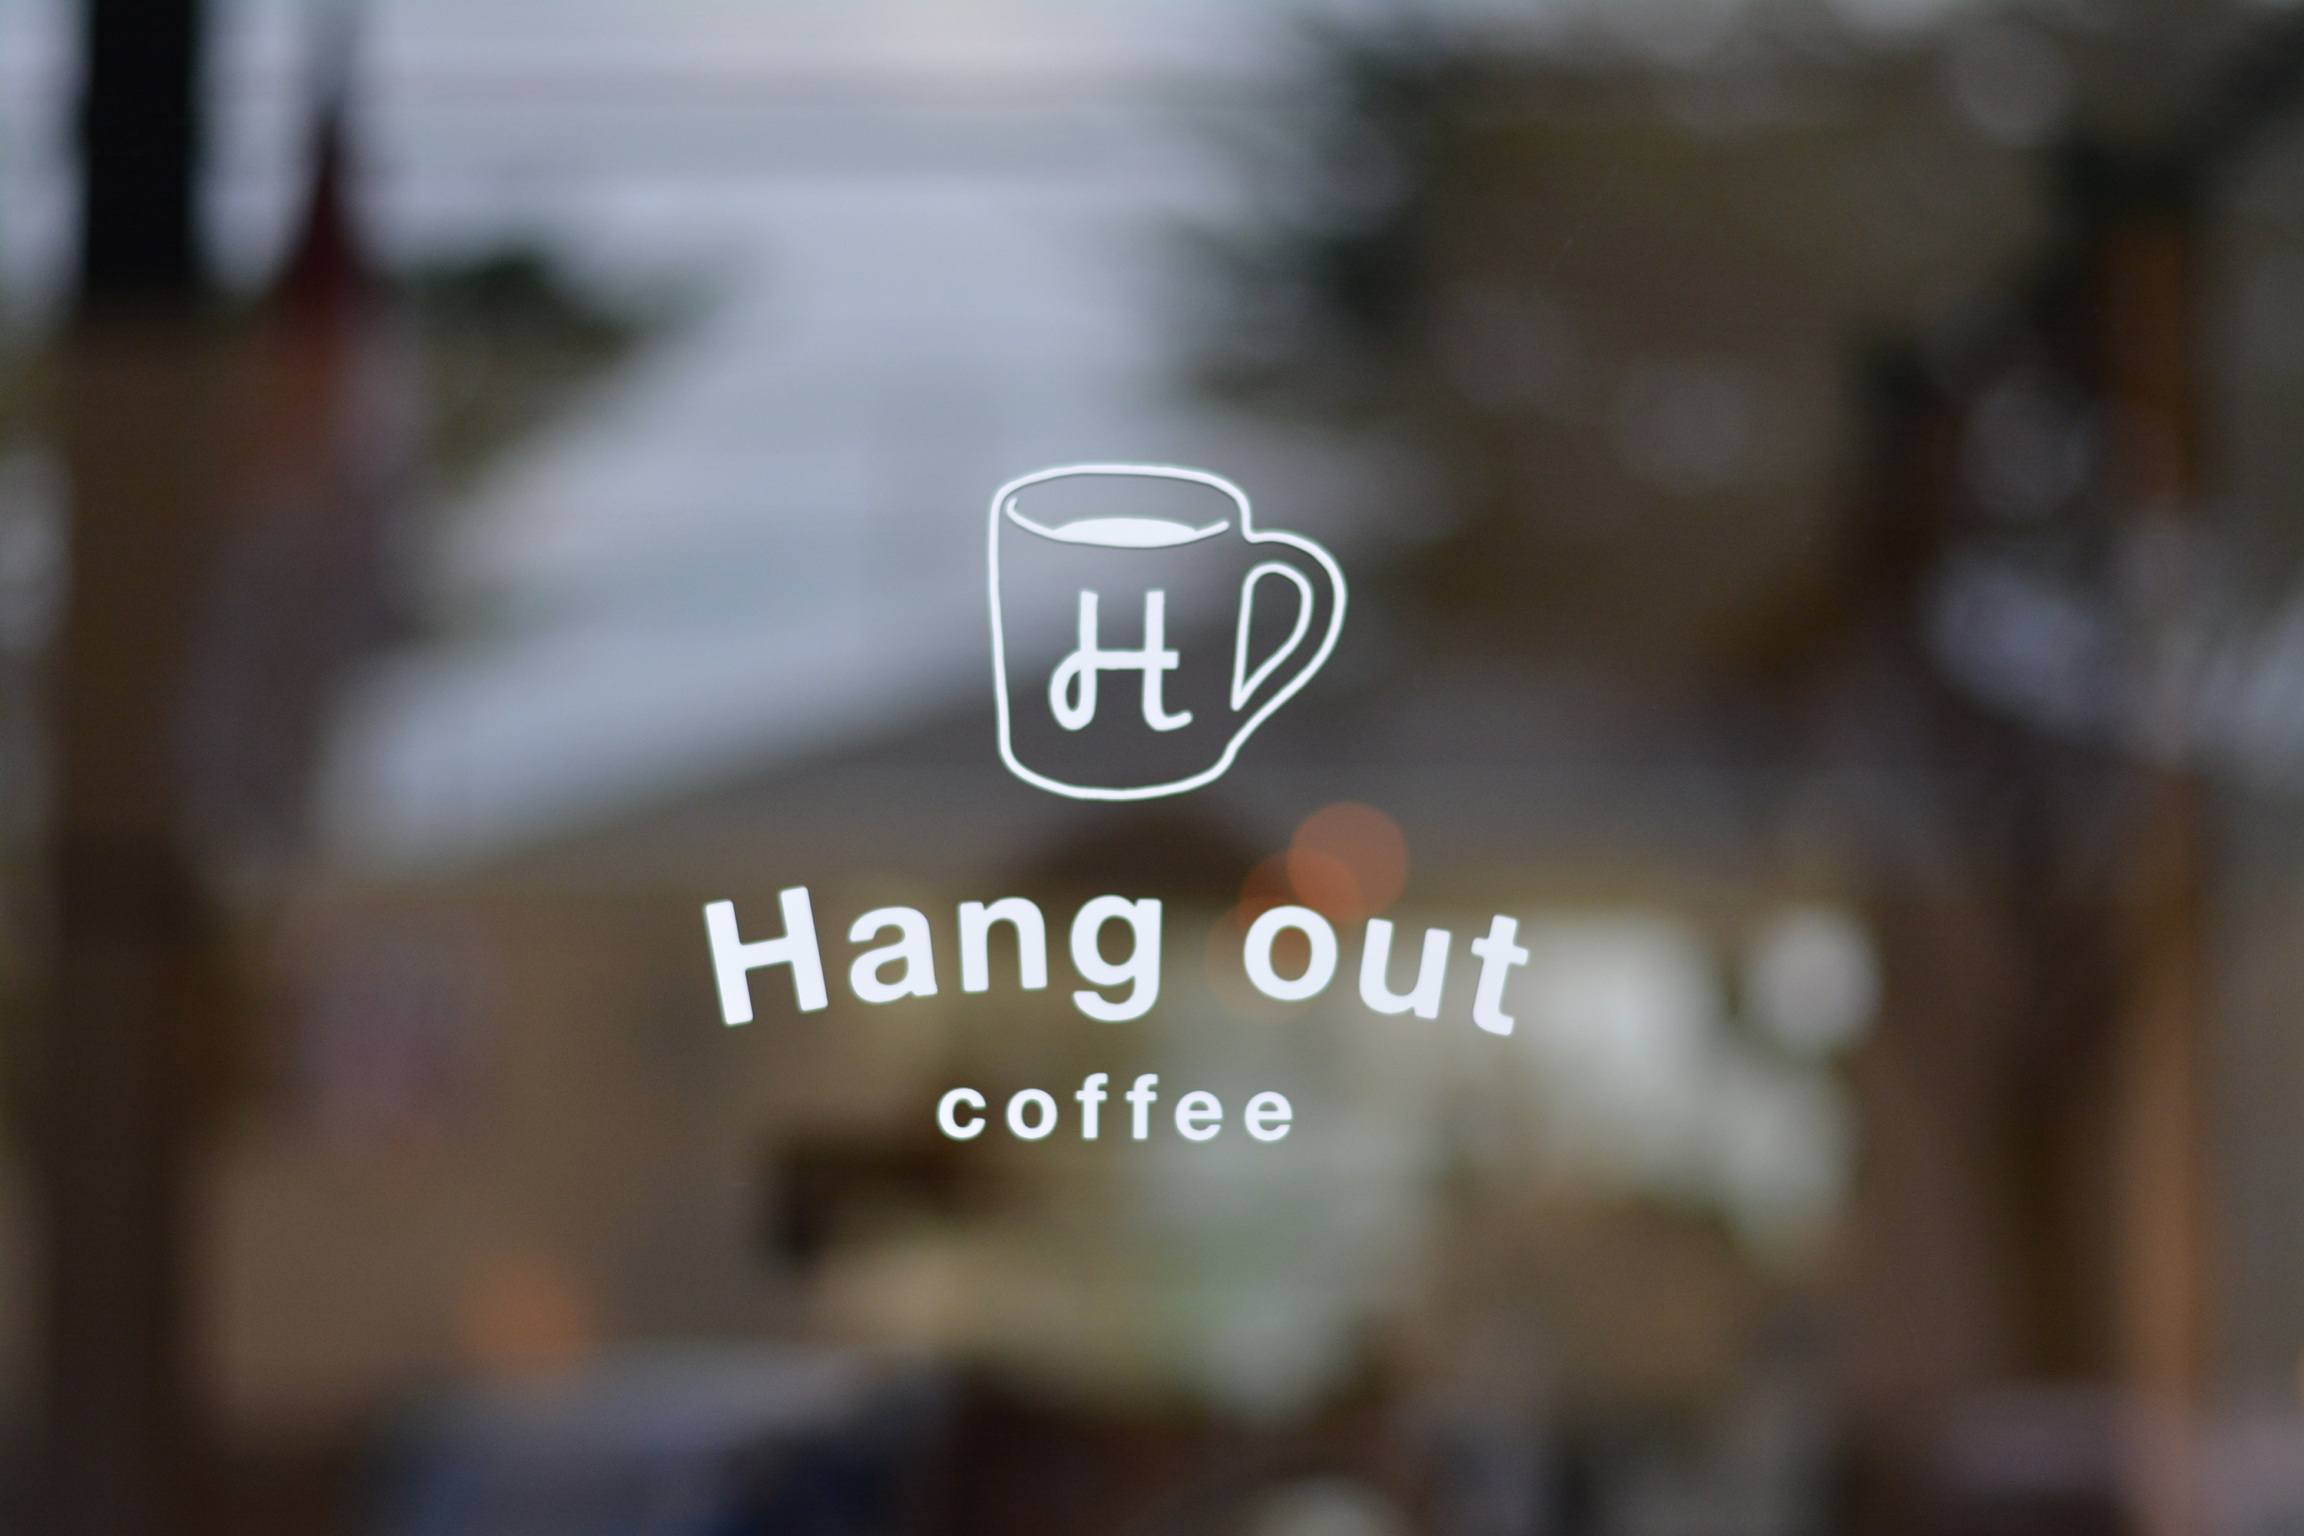 Hang out coffee